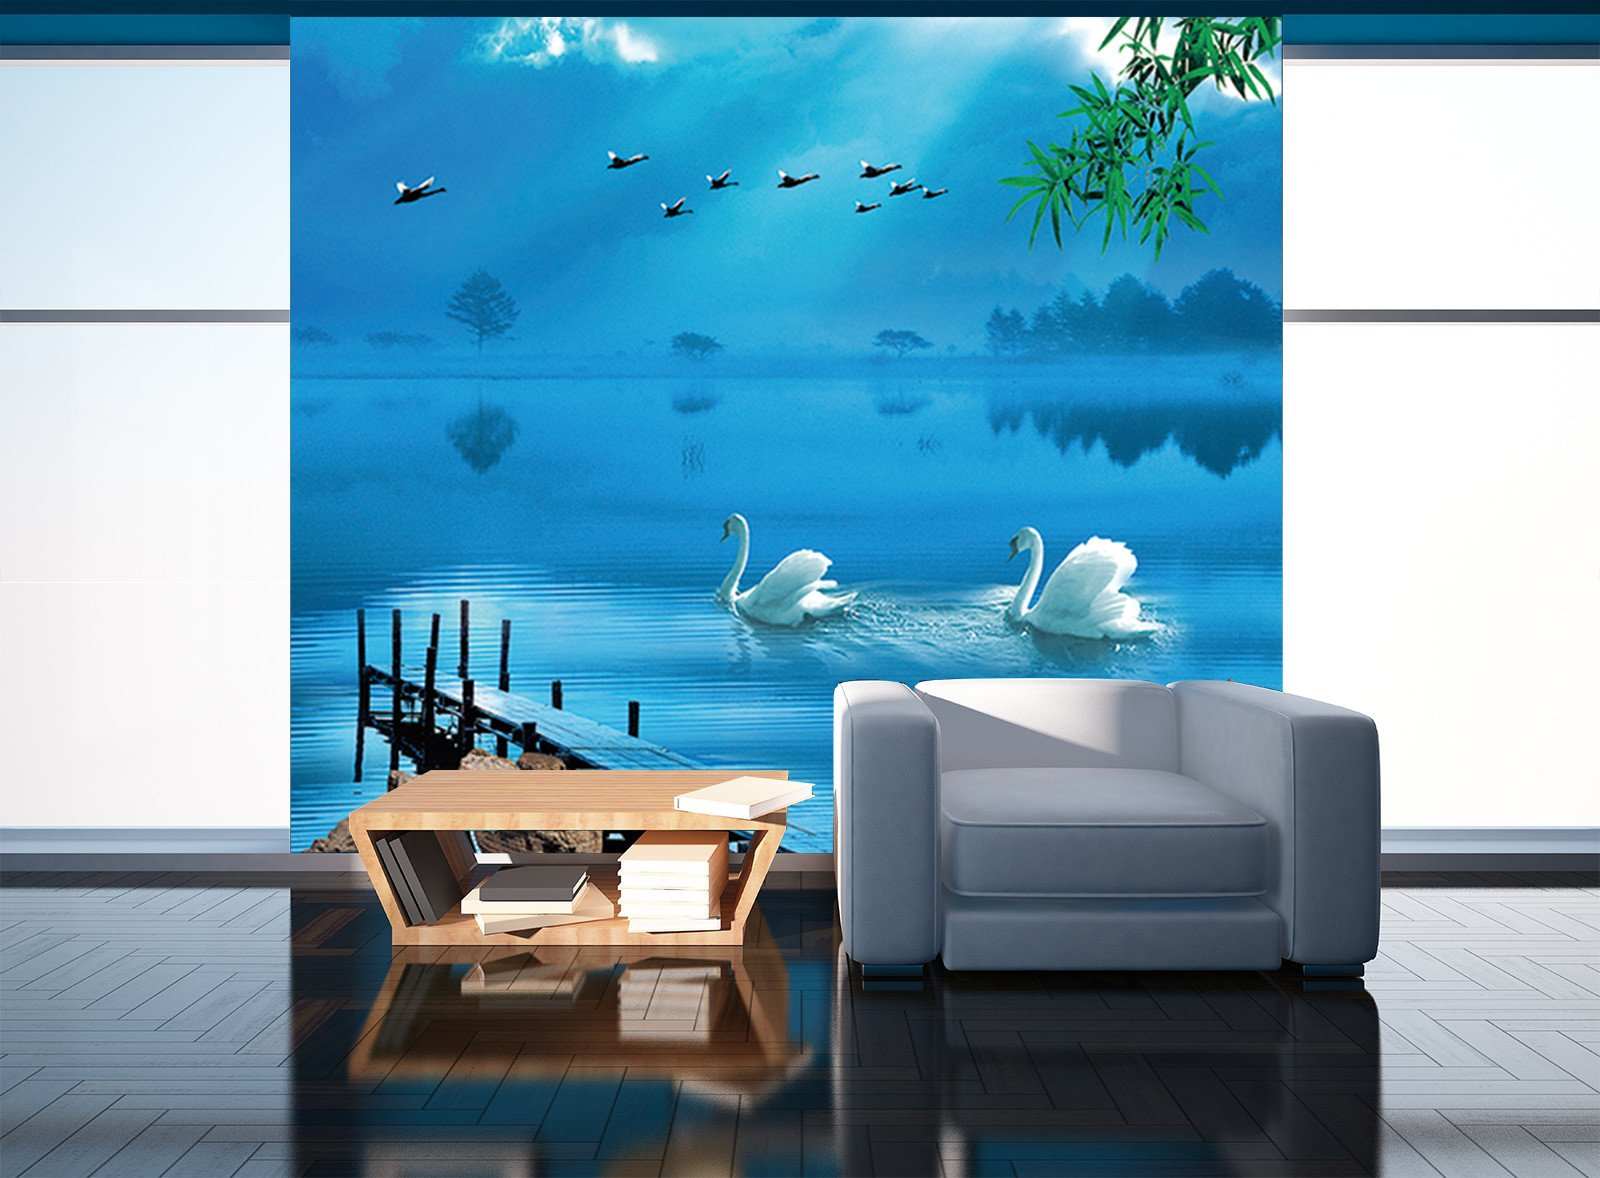 3D Blue Swan Lake 576 Wallpaper AJ Wallpaper